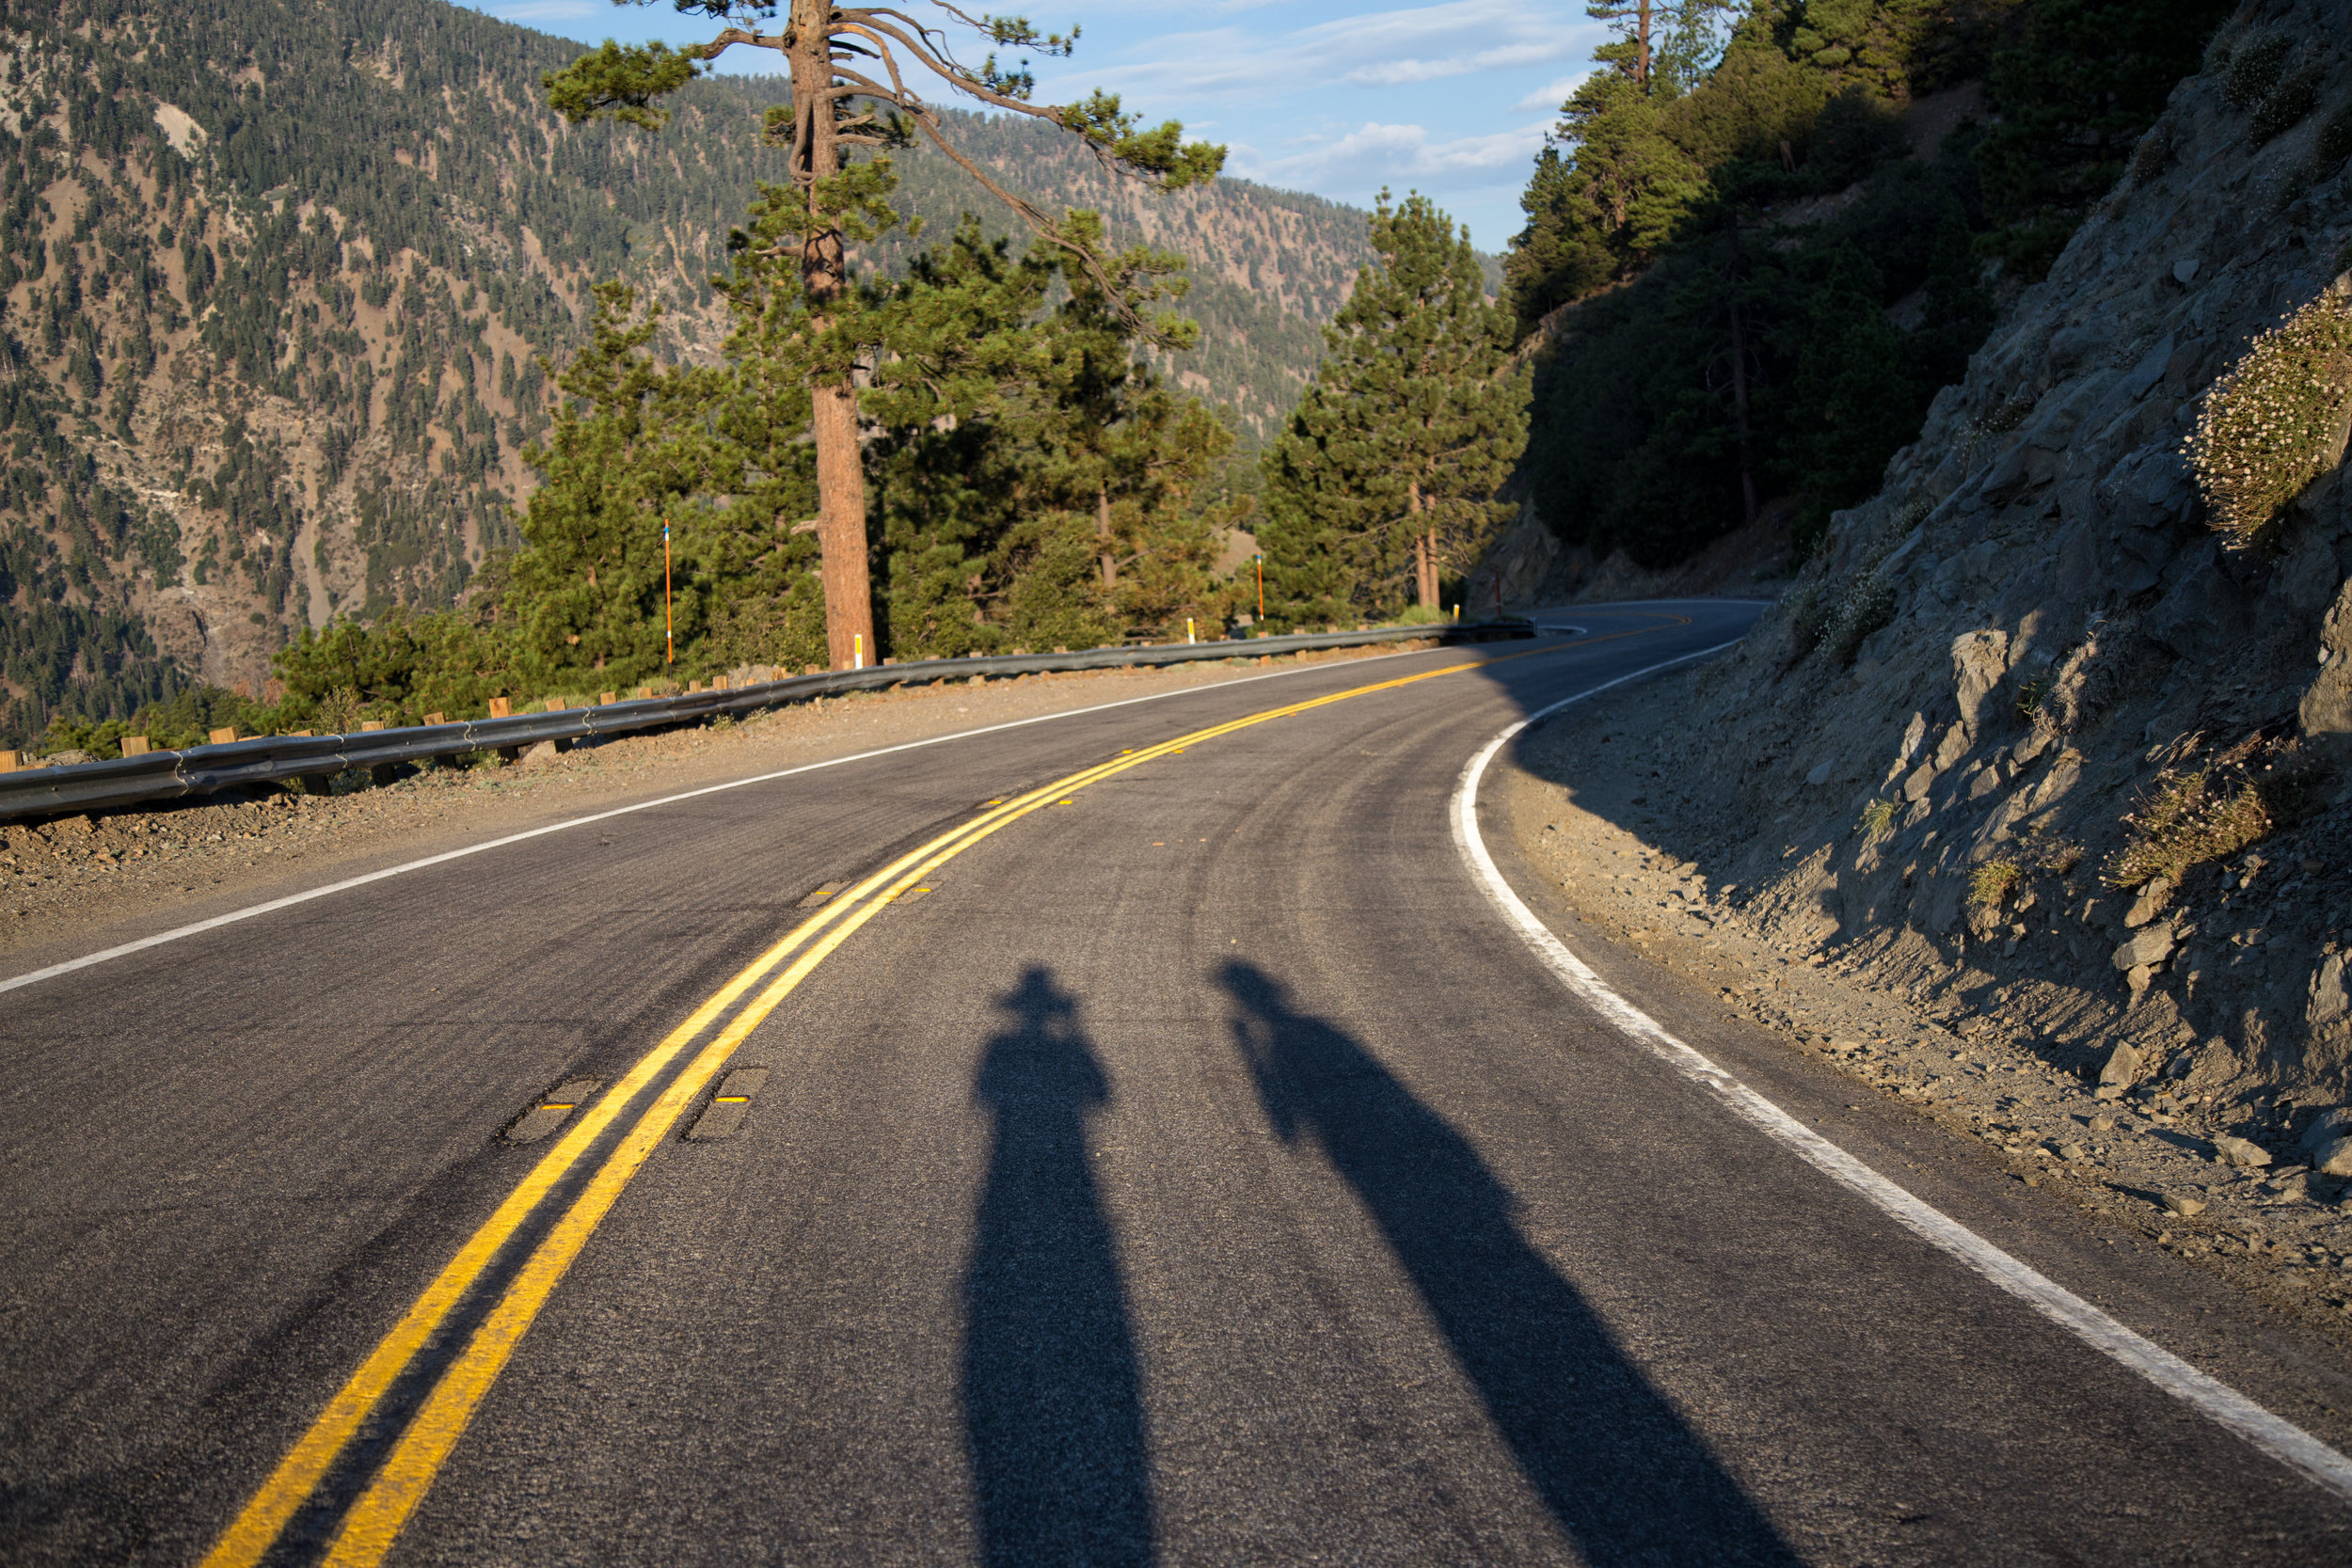 Our shadows as we walked down Highway 2 in the morning sunlight to the trailhead.